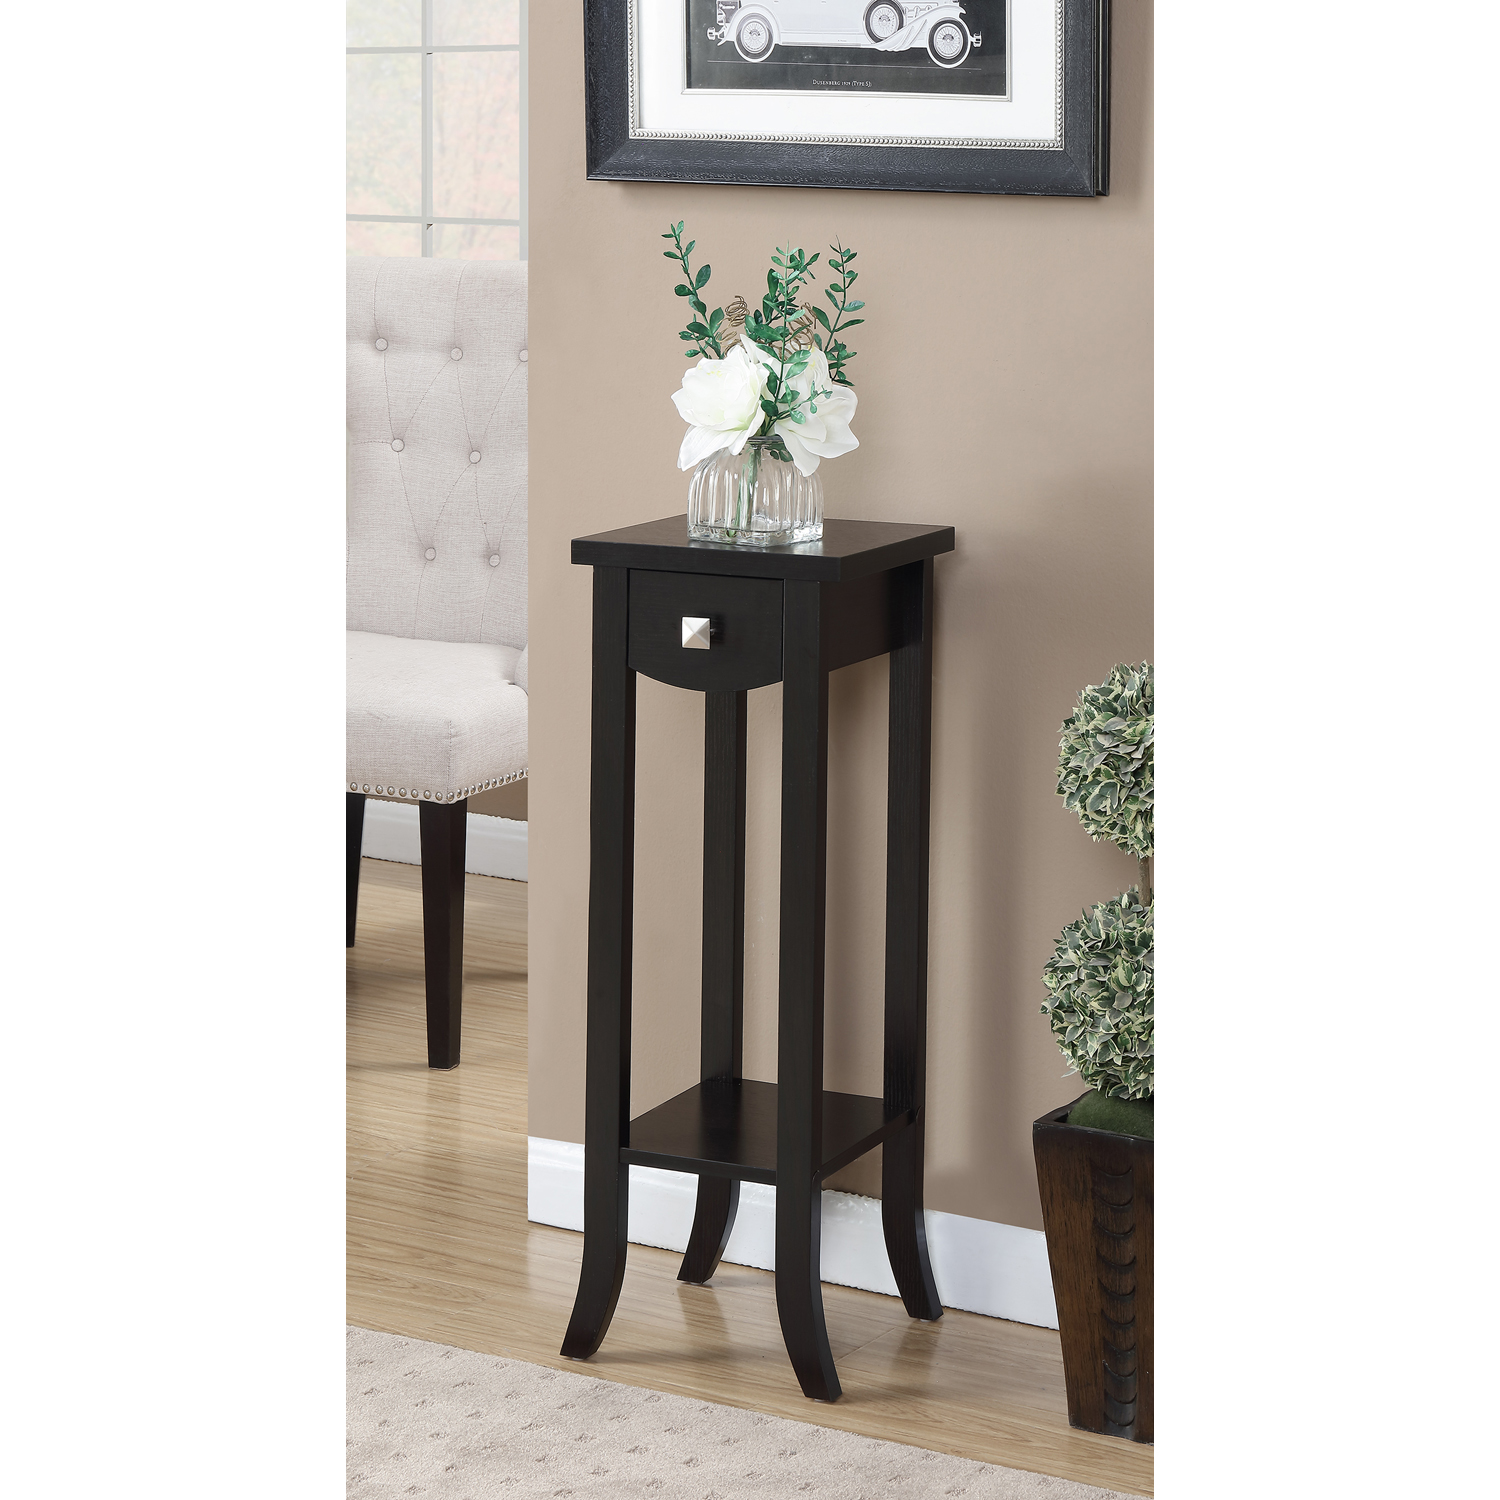 Convenience Concepts Newport Prism Medium Plant Stand by Convenience Concepts